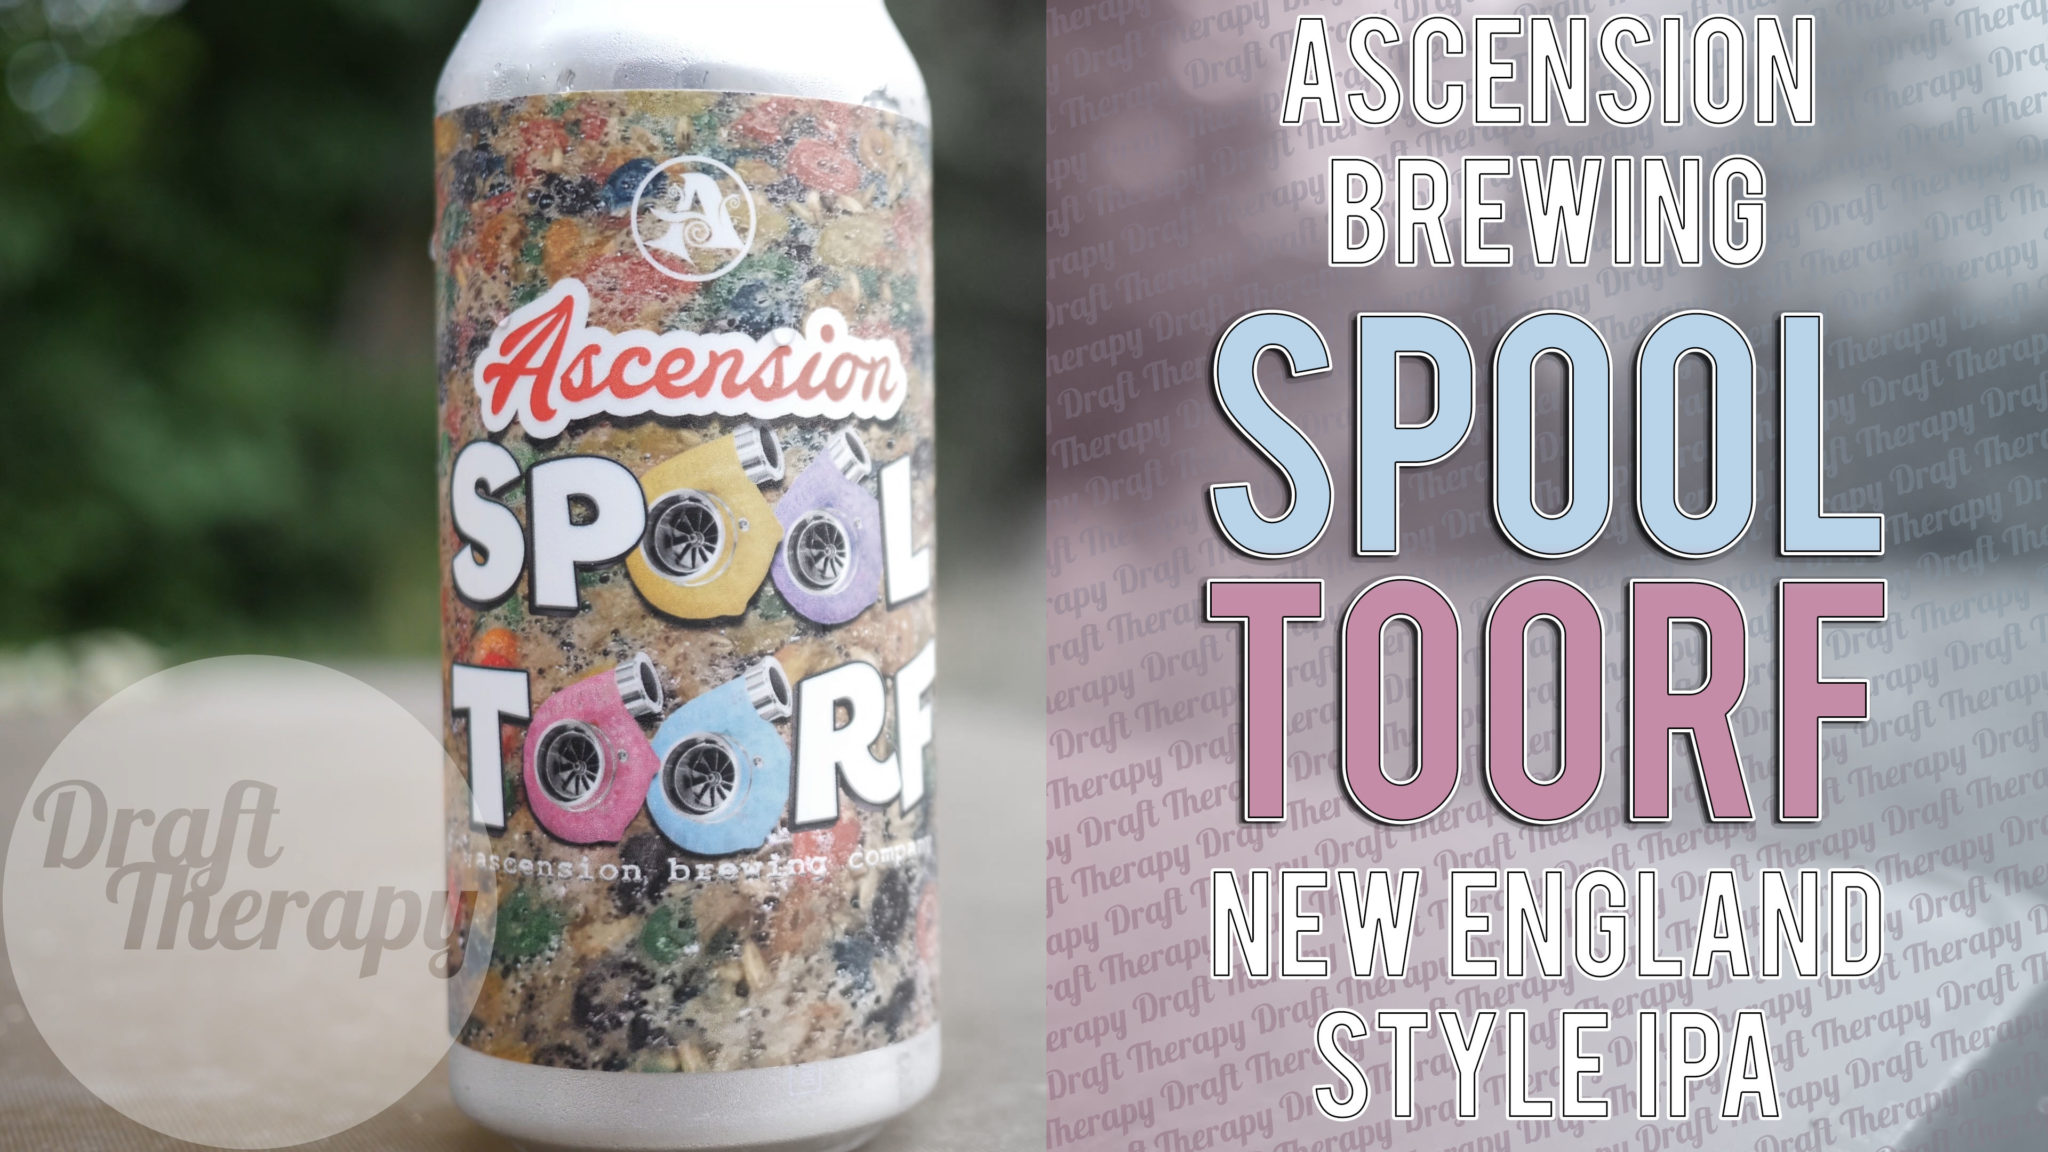 Ascension Brewing Company – Spool Toorf New England Style IPA